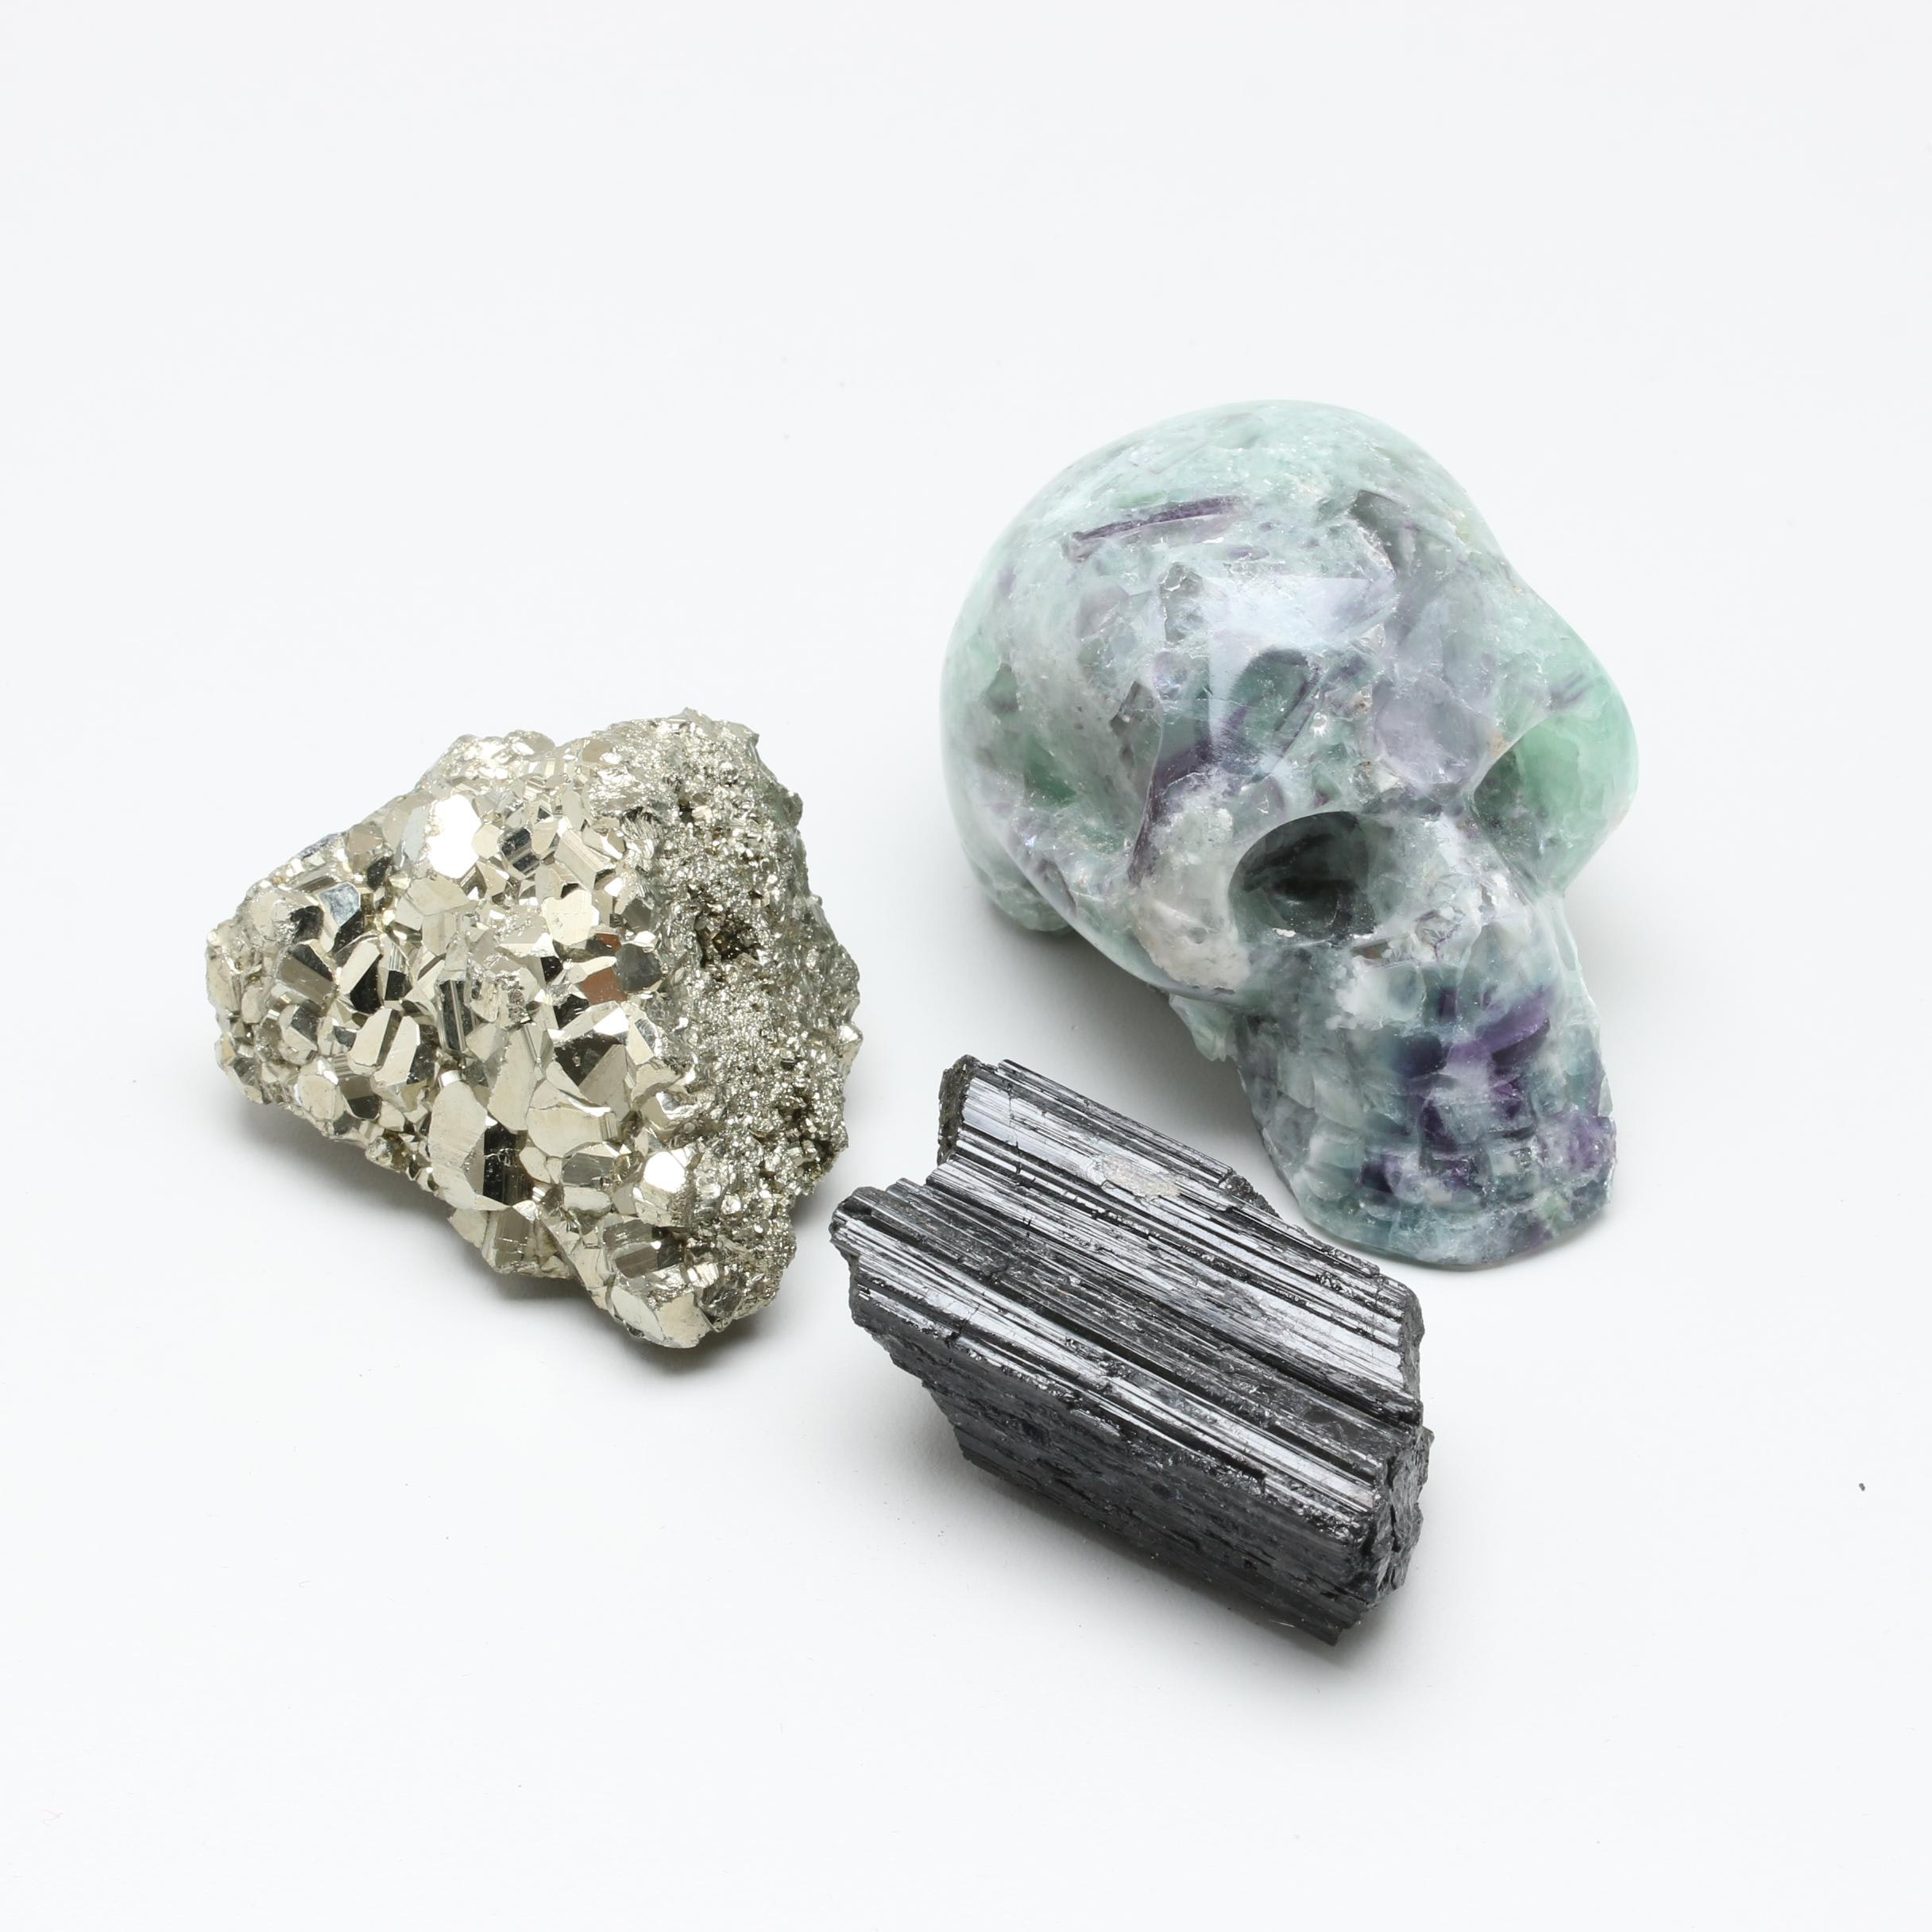 Collection of Mineral Specimens Including Schorl, Pyrite, and Fluorite Skull